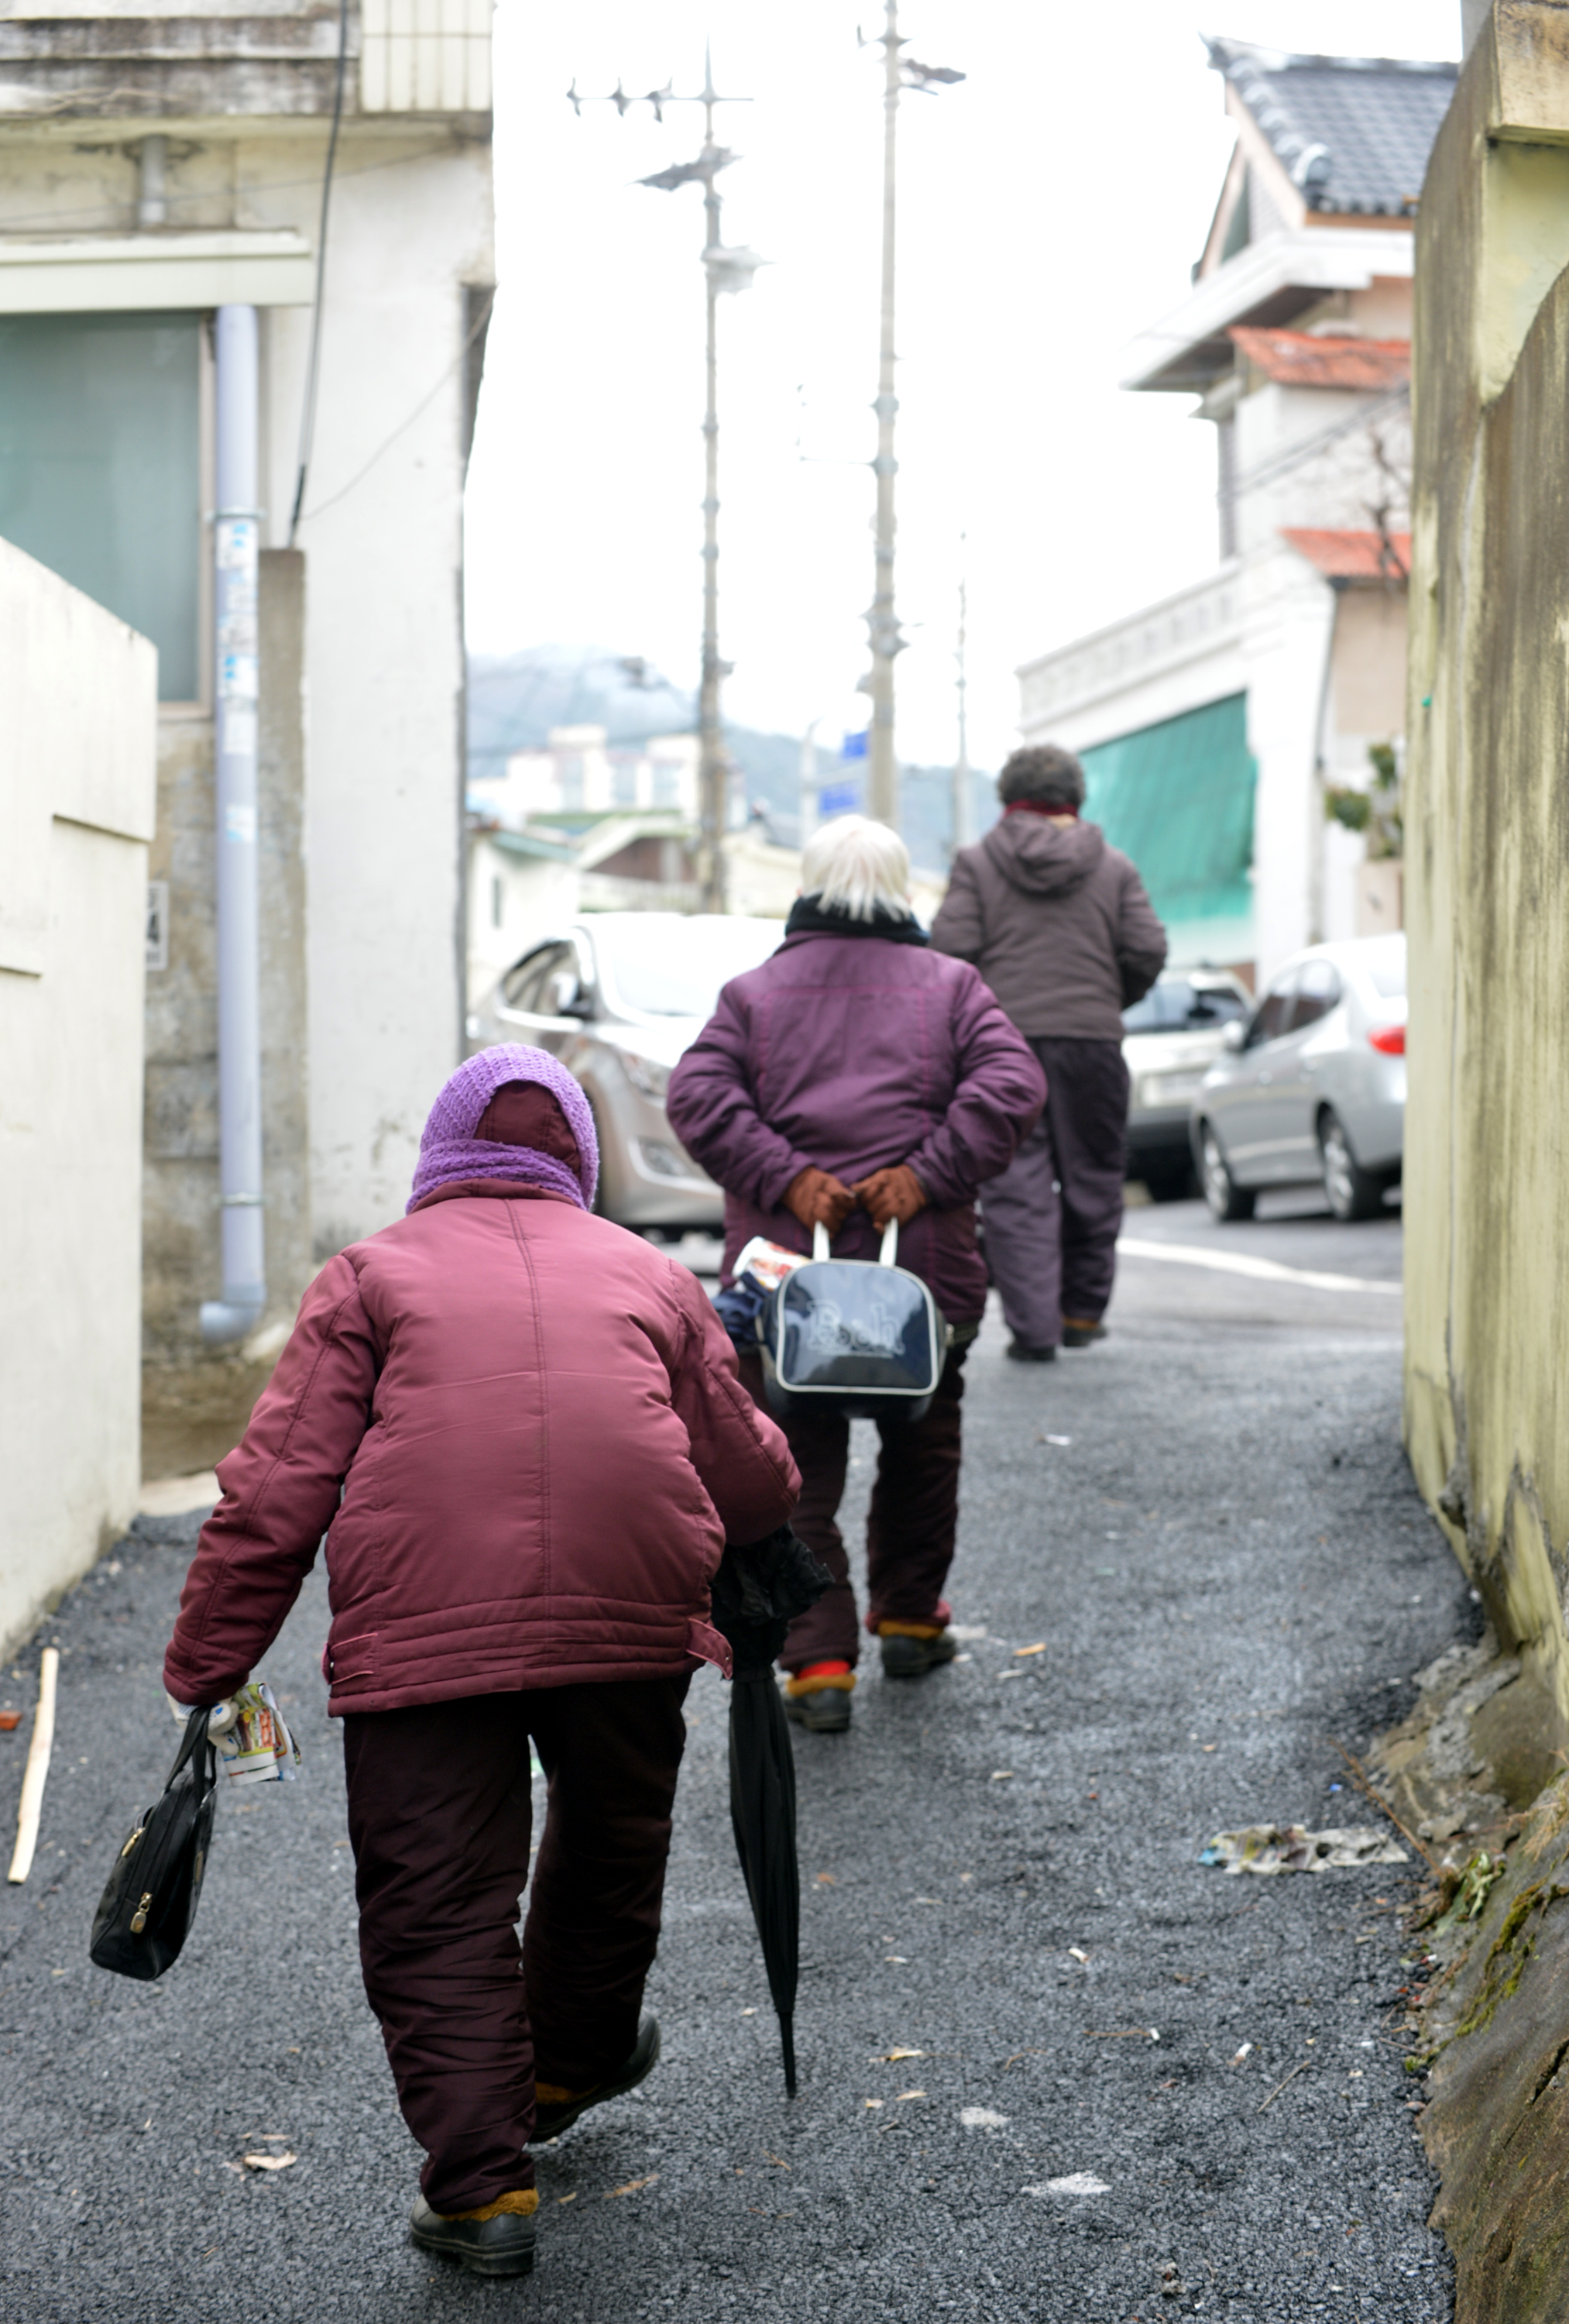 South Korea is known for big spending on private tutors and luxury goods, but half of elderly are poor, which is the highest rate in the industrialized world. (Newsis)